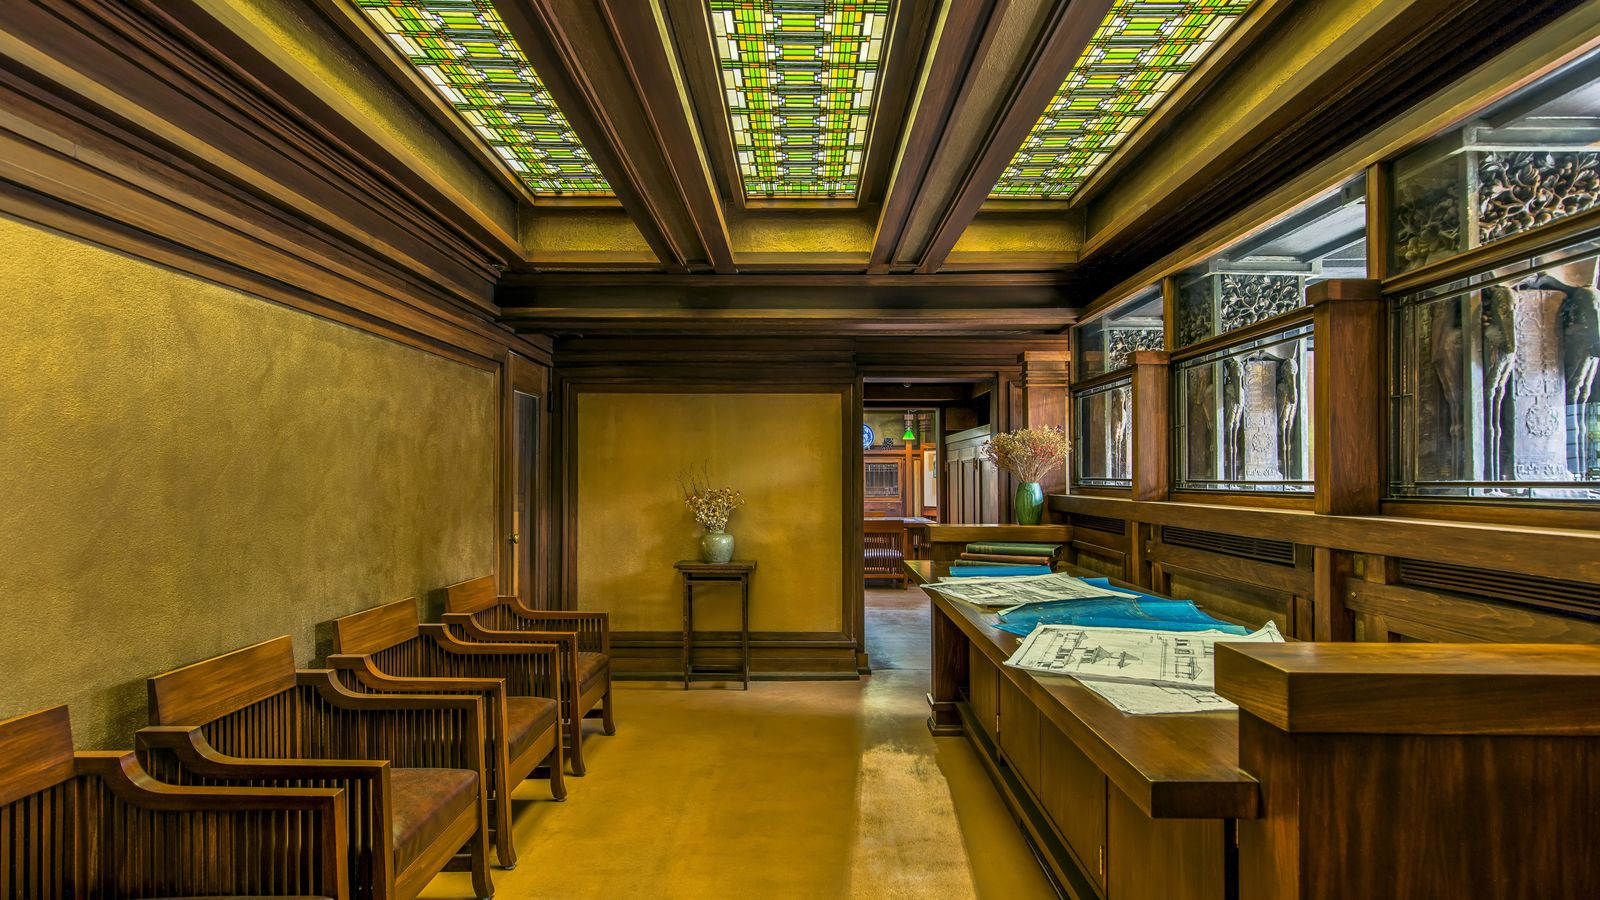 Frank lloyd wright furniture designer curbed - Frank lloyd wright designs ...